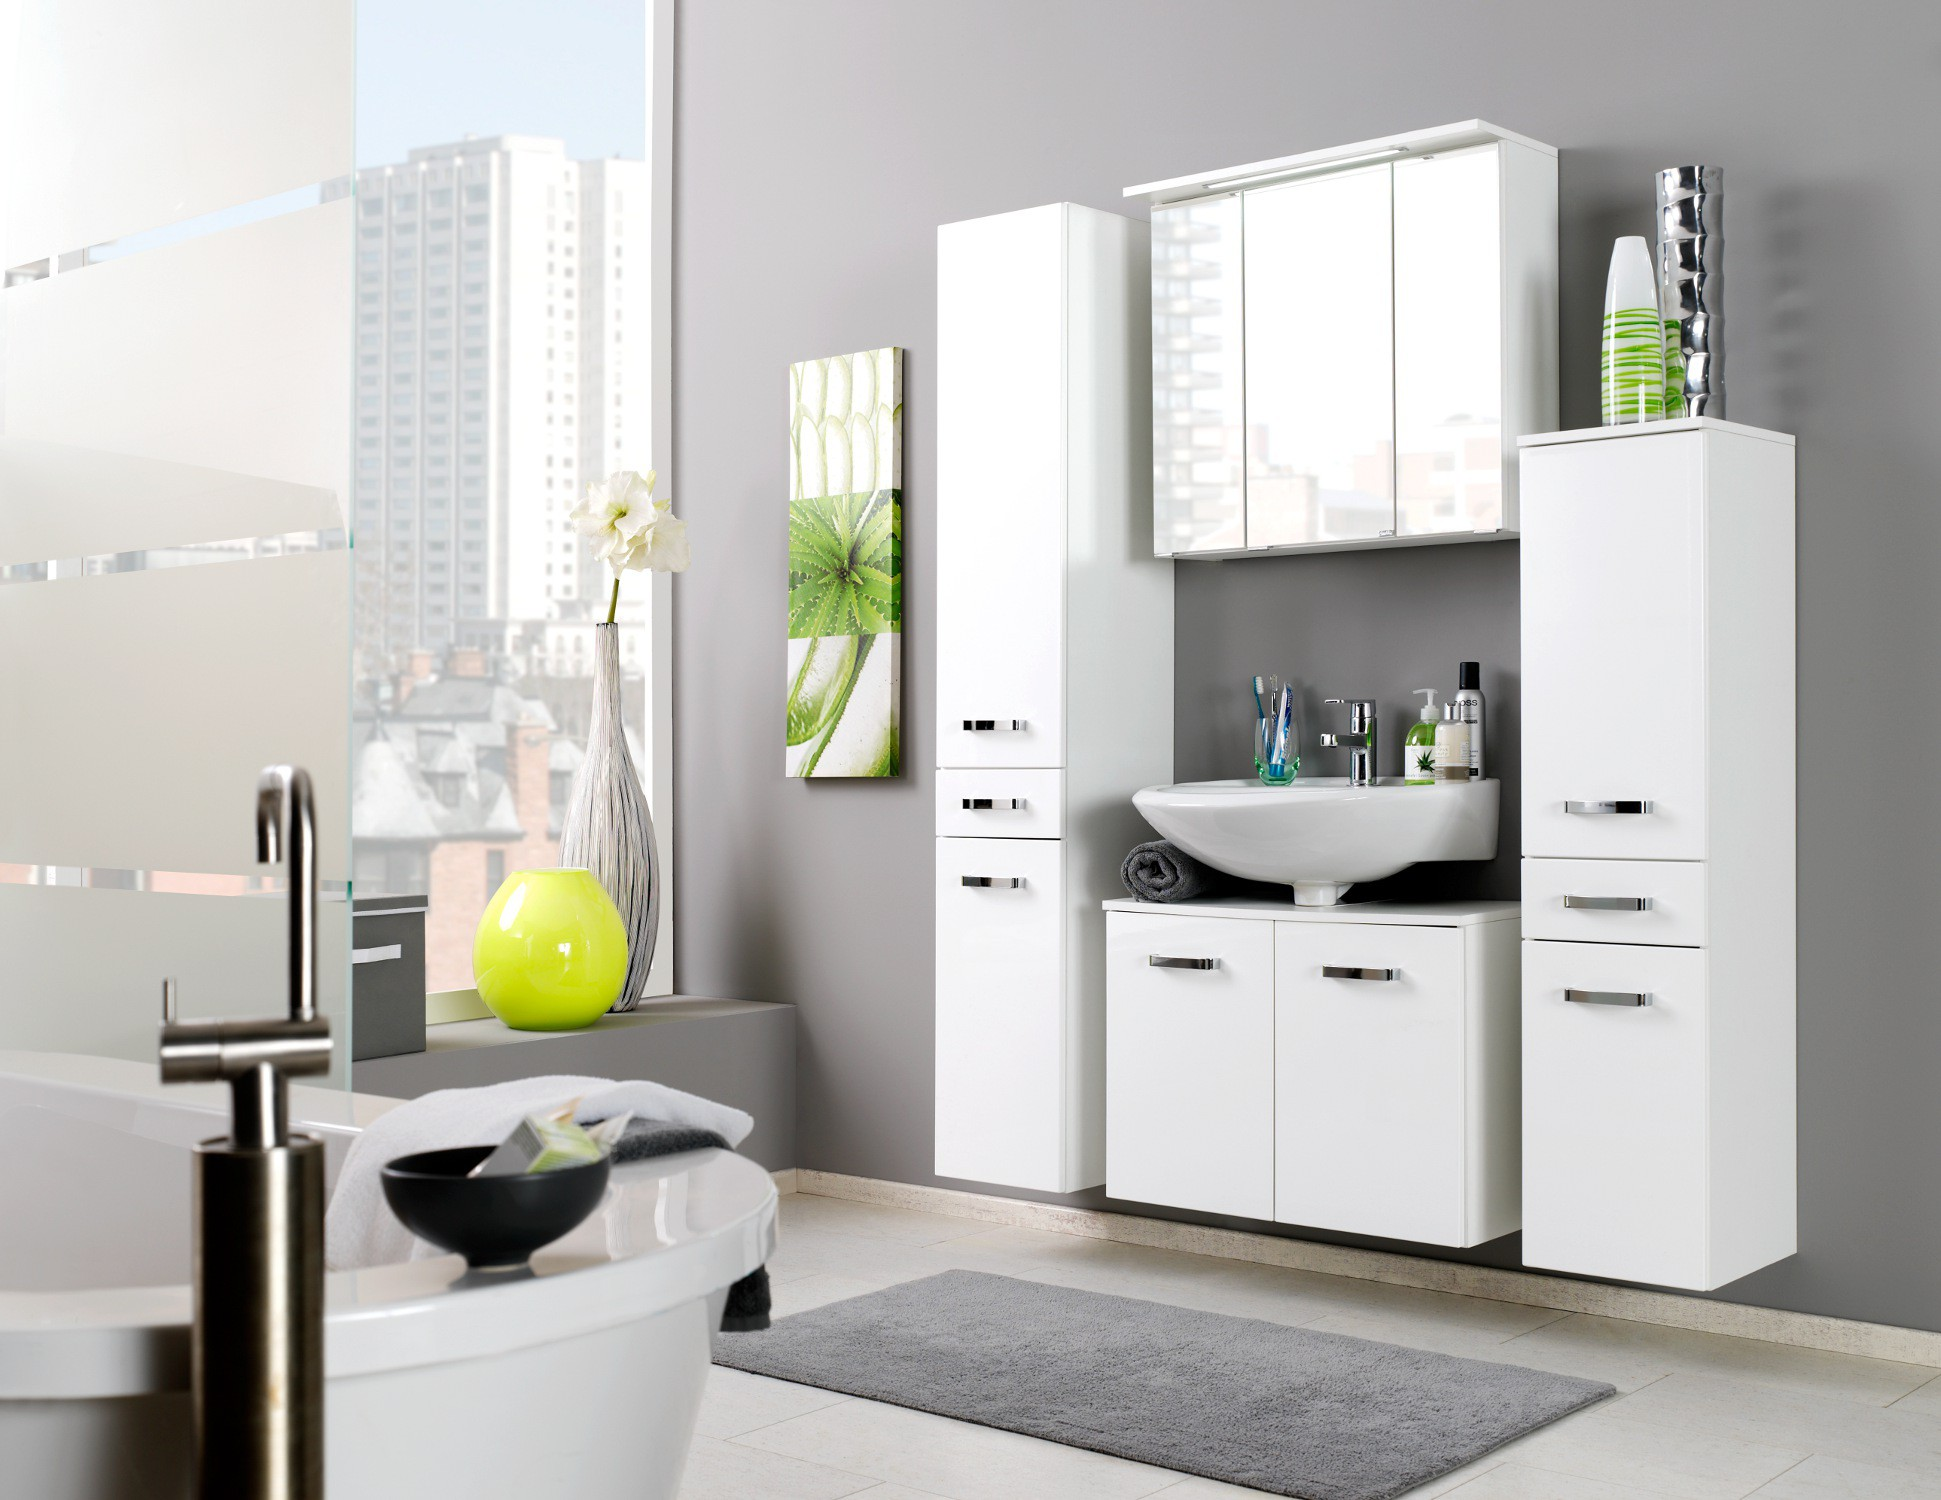 waschbeckenunterschrank bologna waschtisch unterschrank badschrank 60 cm weiss ebay. Black Bedroom Furniture Sets. Home Design Ideas